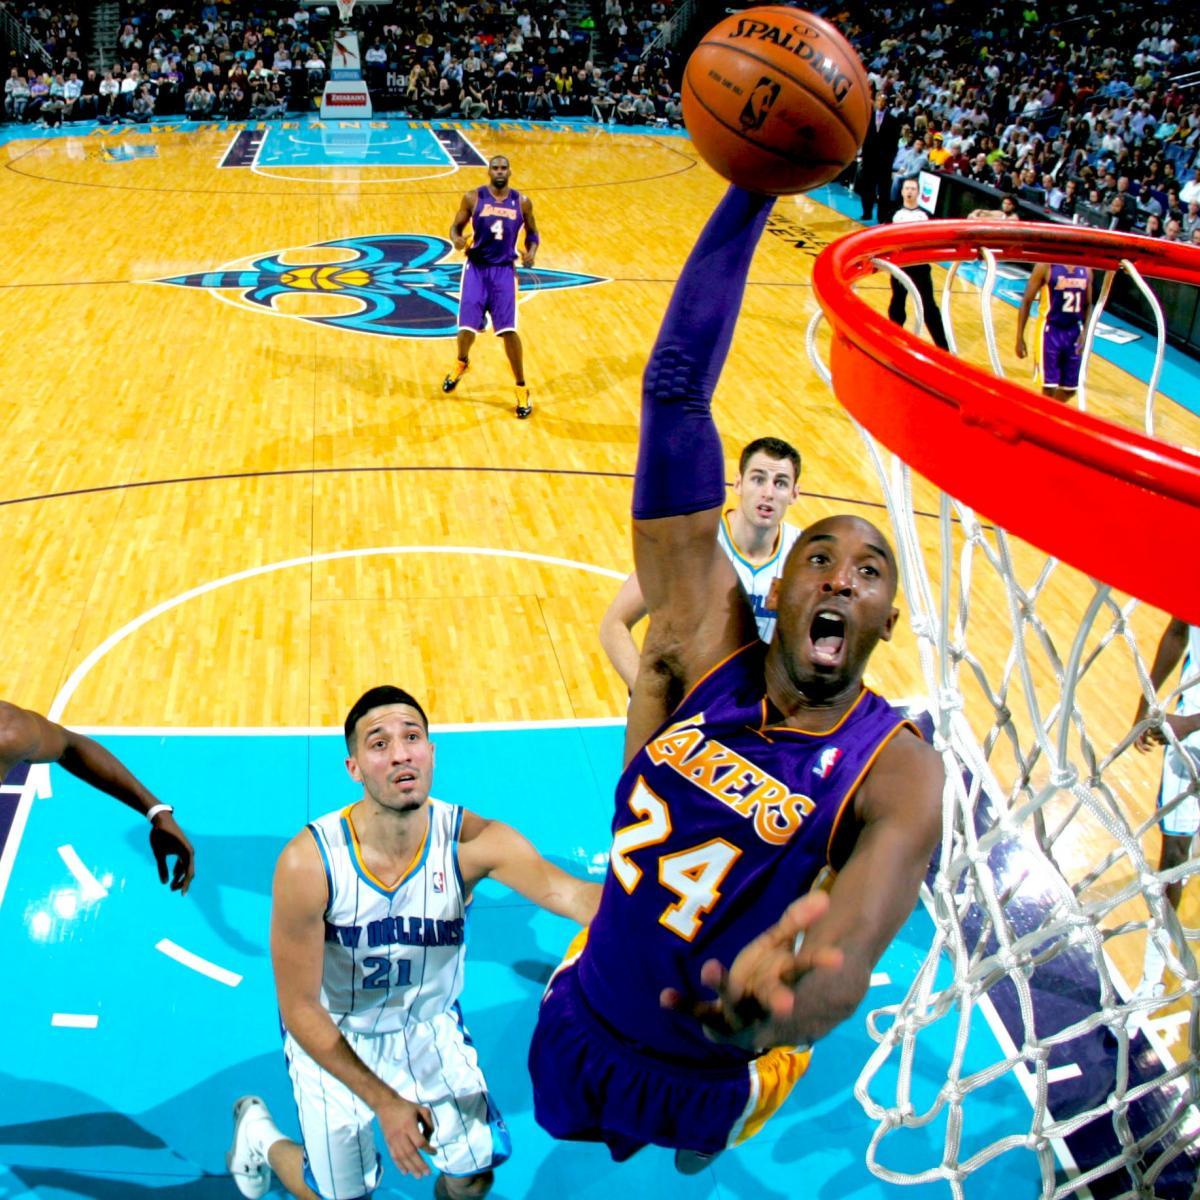 New Orleans Hornets Vs. LA Lakers: Live Score, Results And